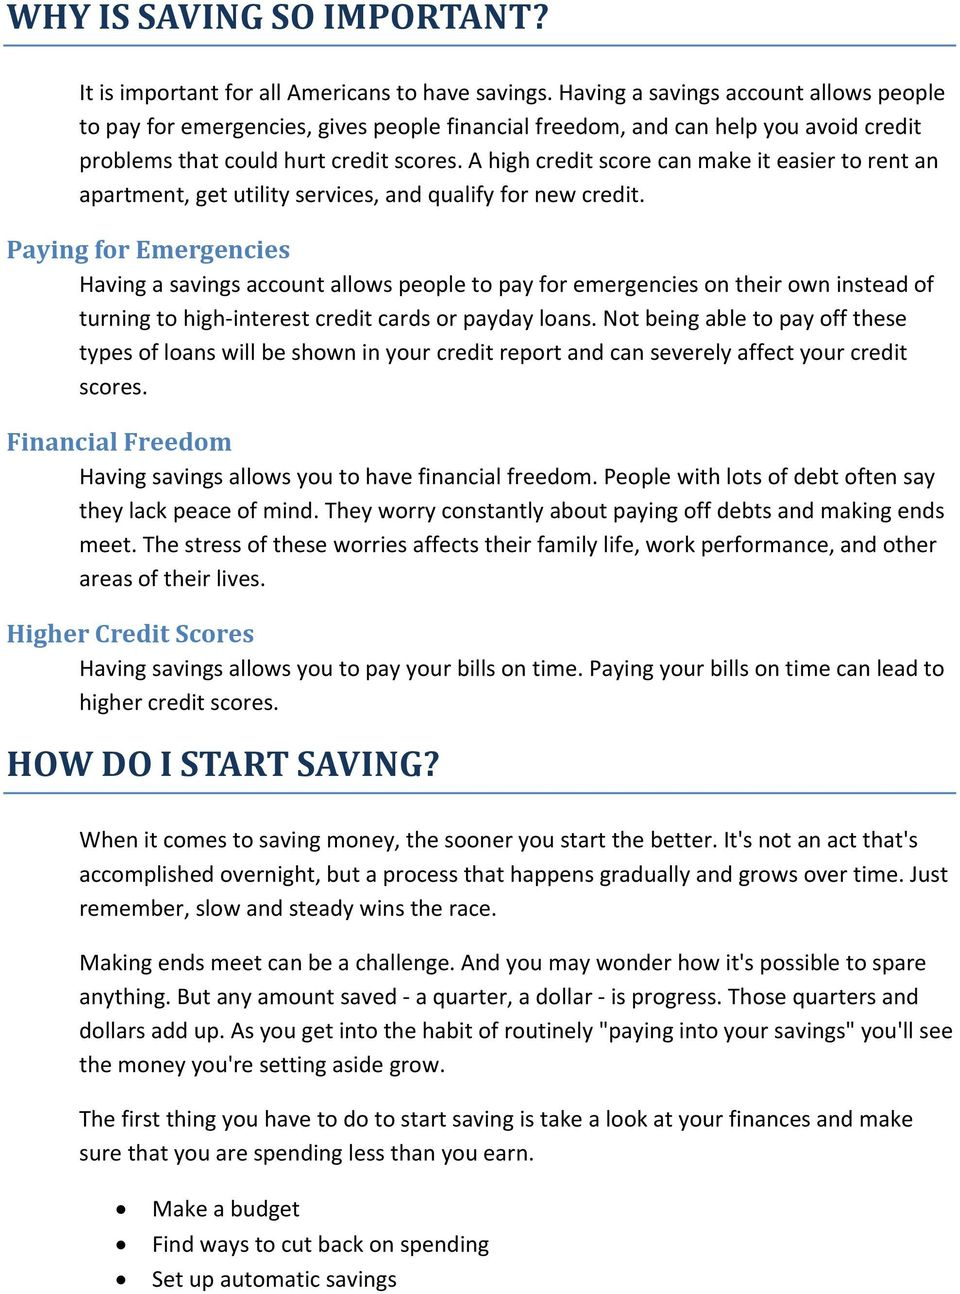 A high credit score can make it easier to rent an apartment, get utility services, and qualify for new credit.